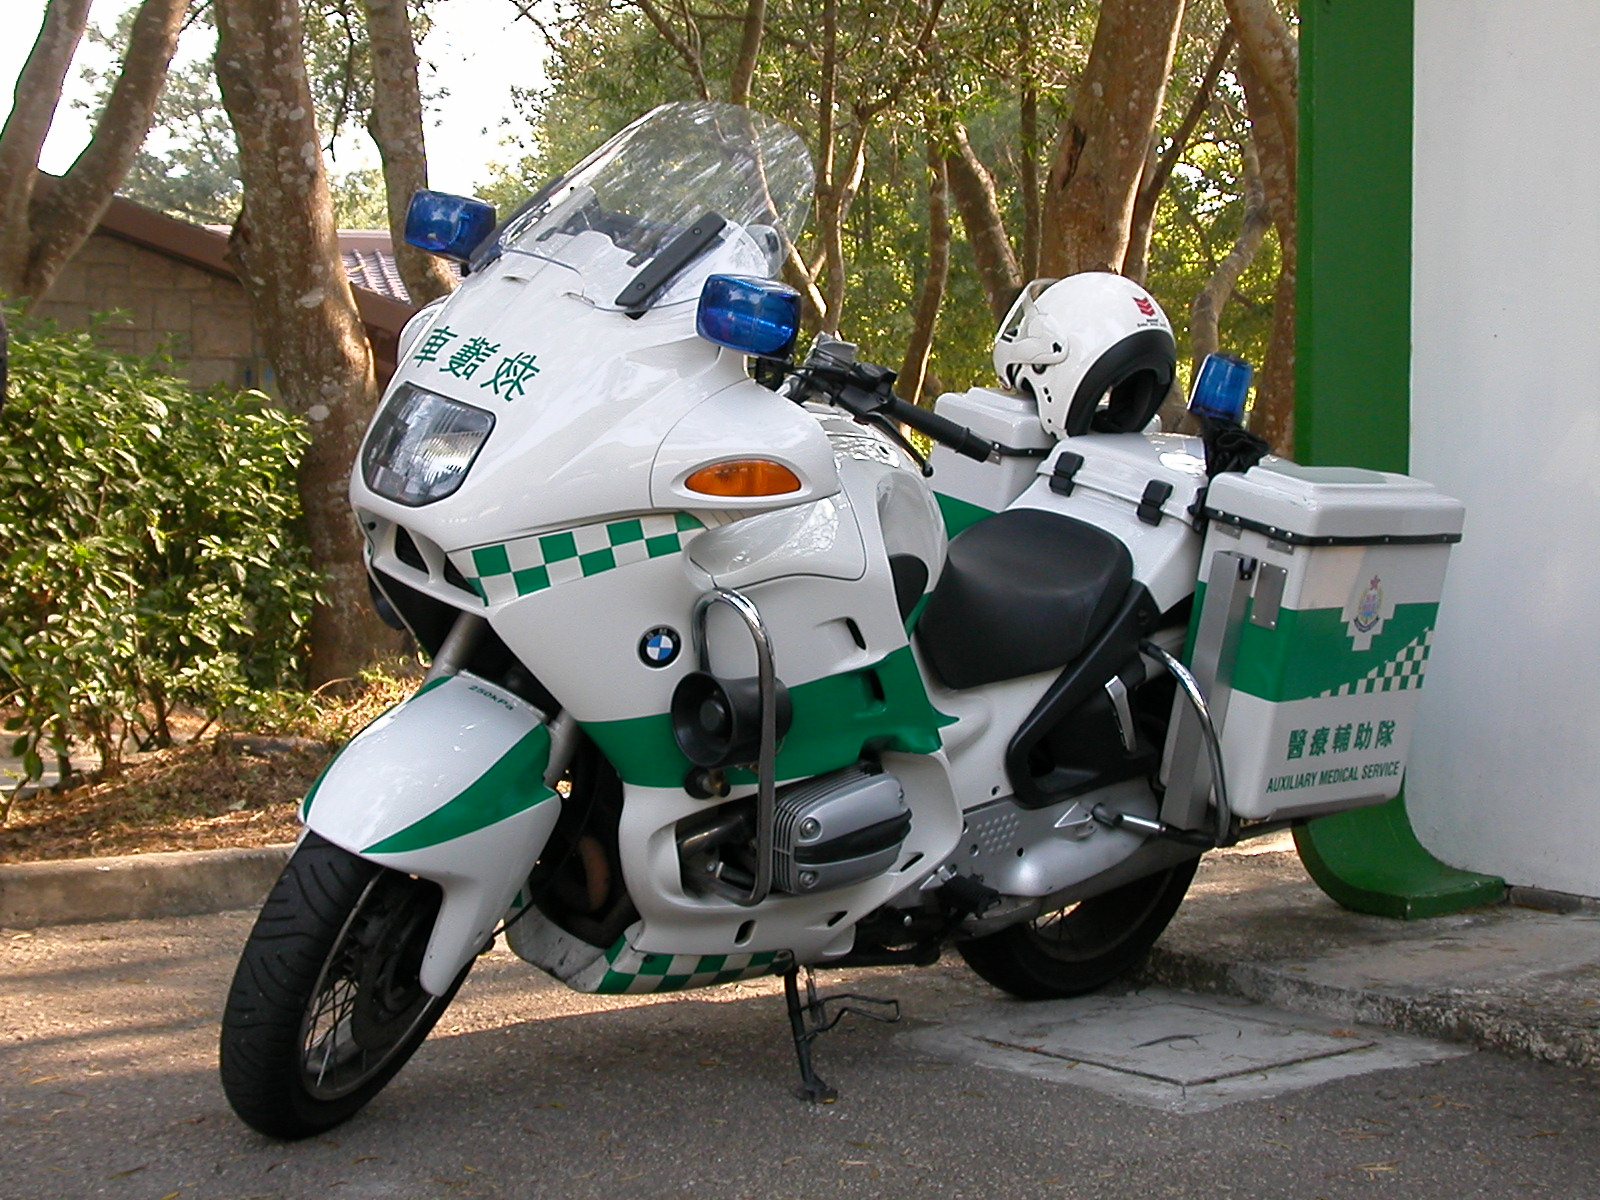 Description auxiliary medical service motorcycle jpg